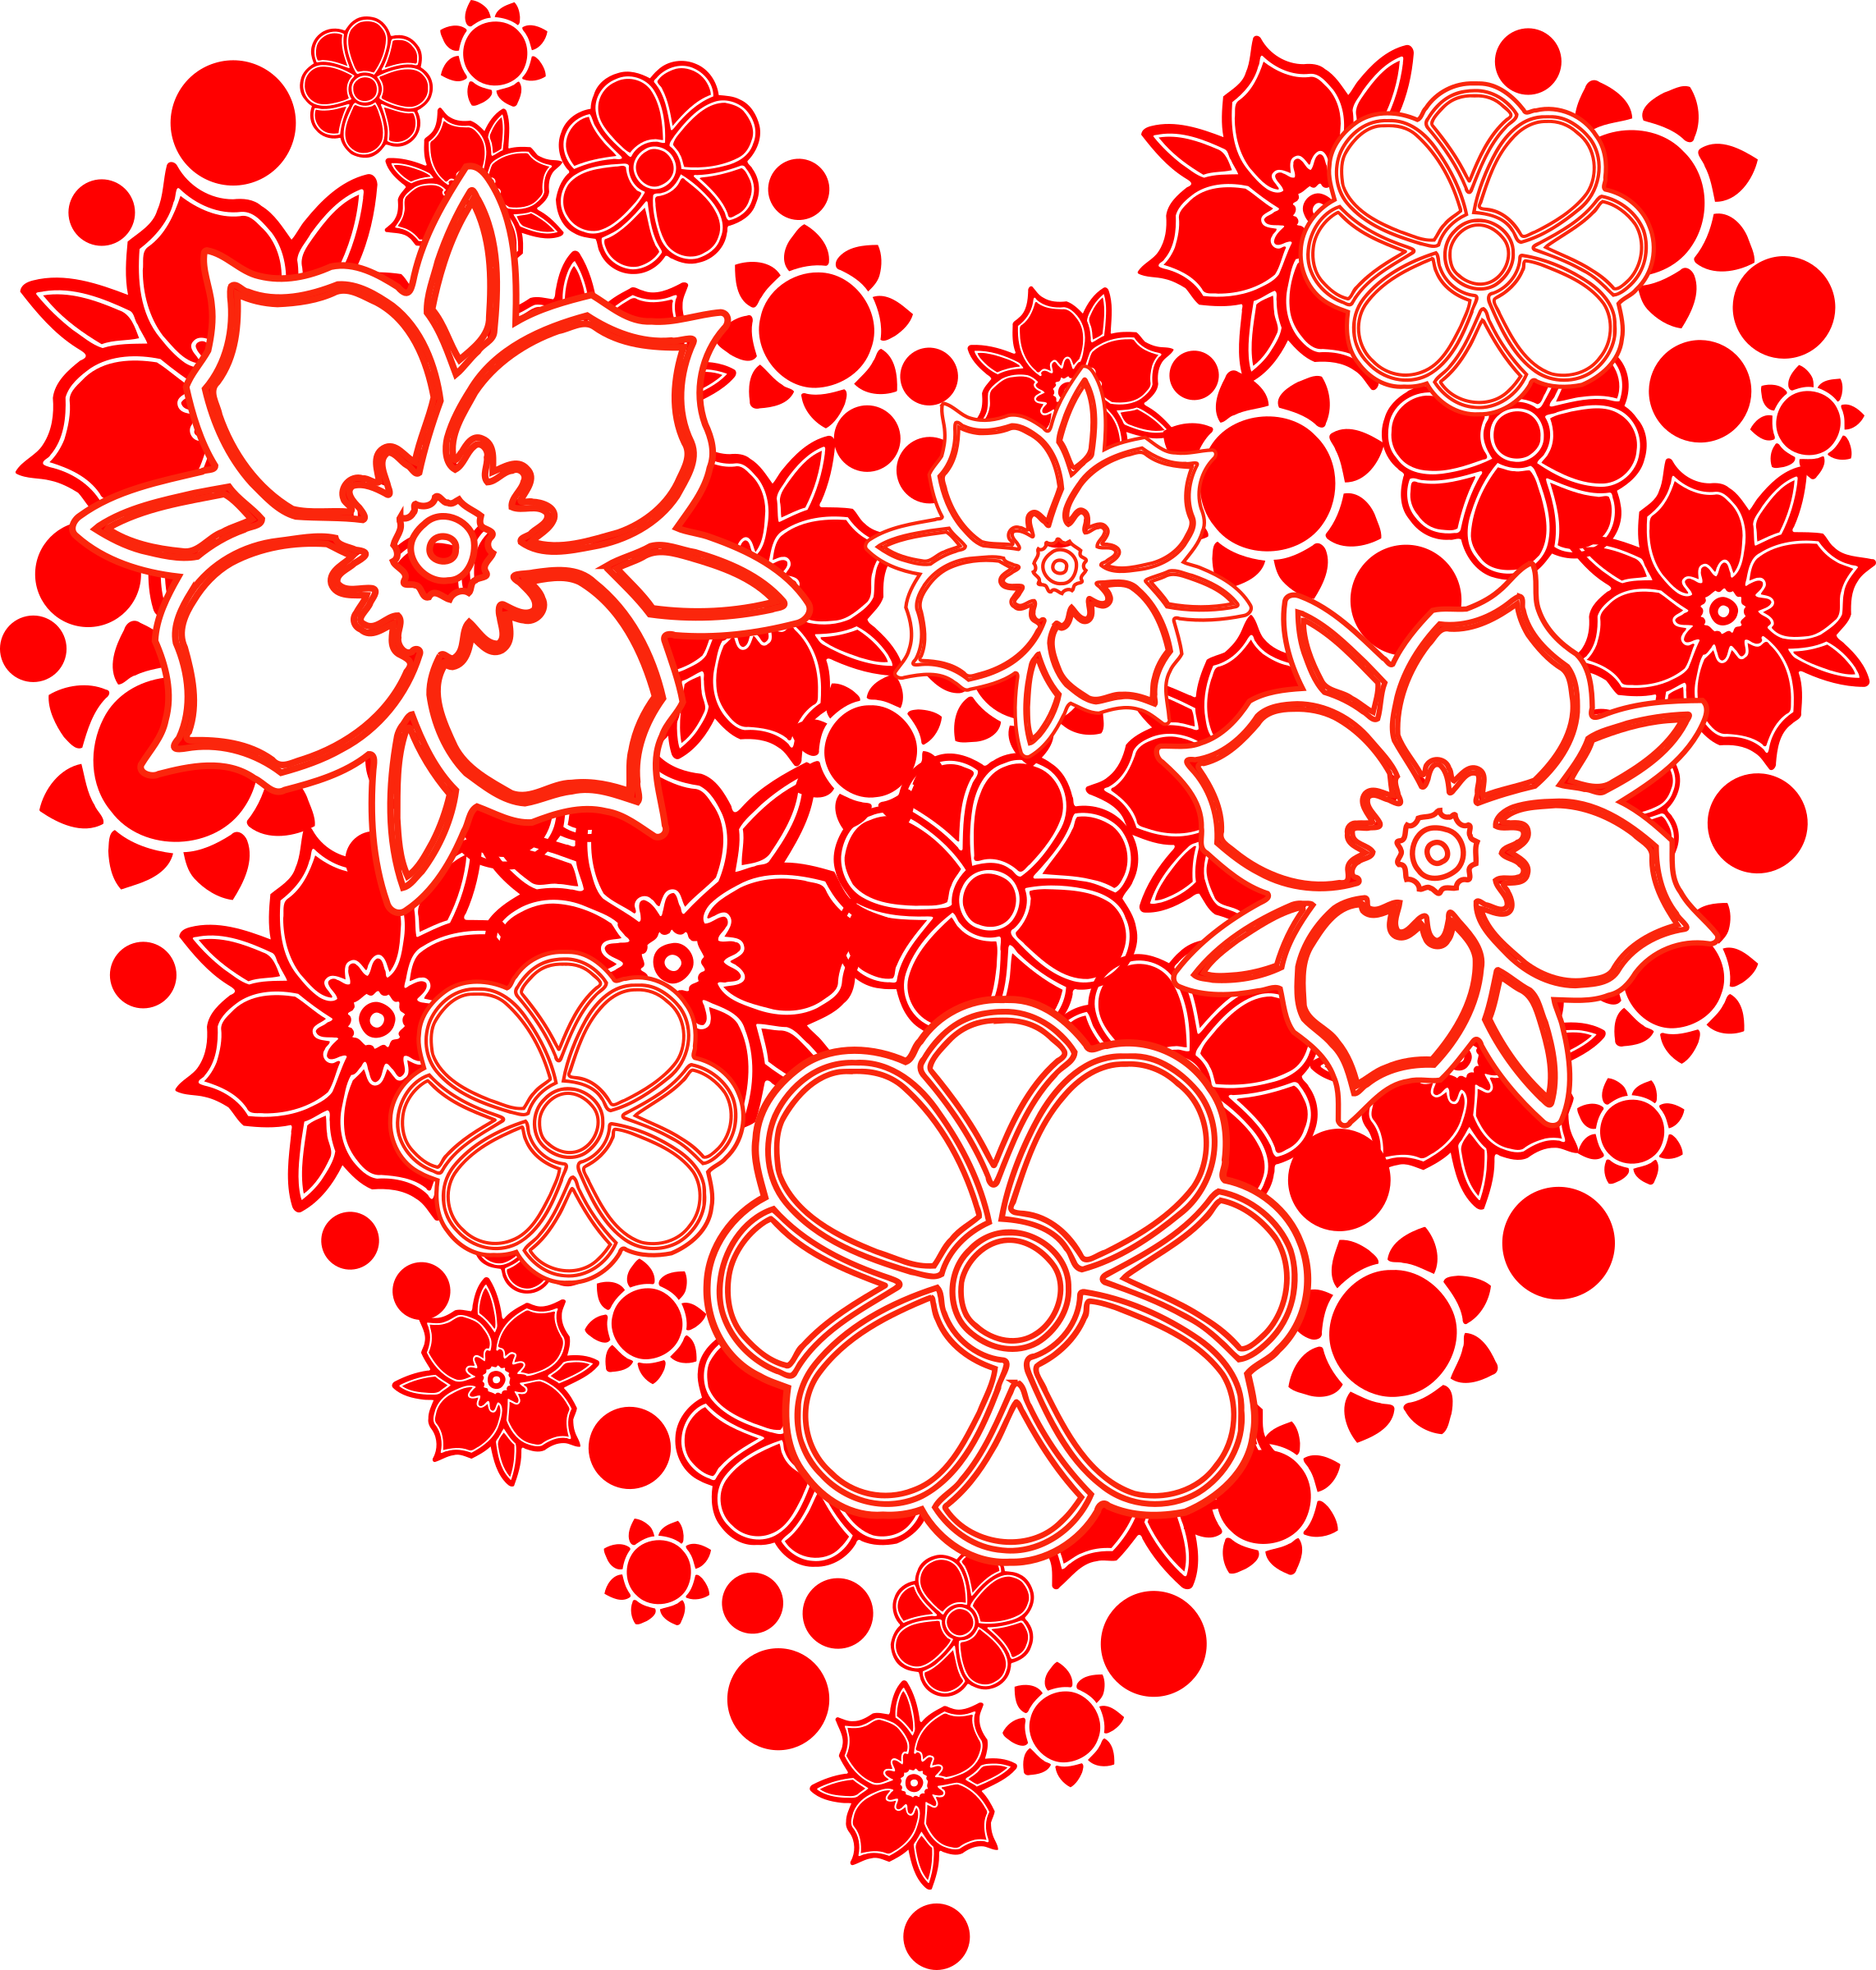 clipart cora flores hearth flowers #39780